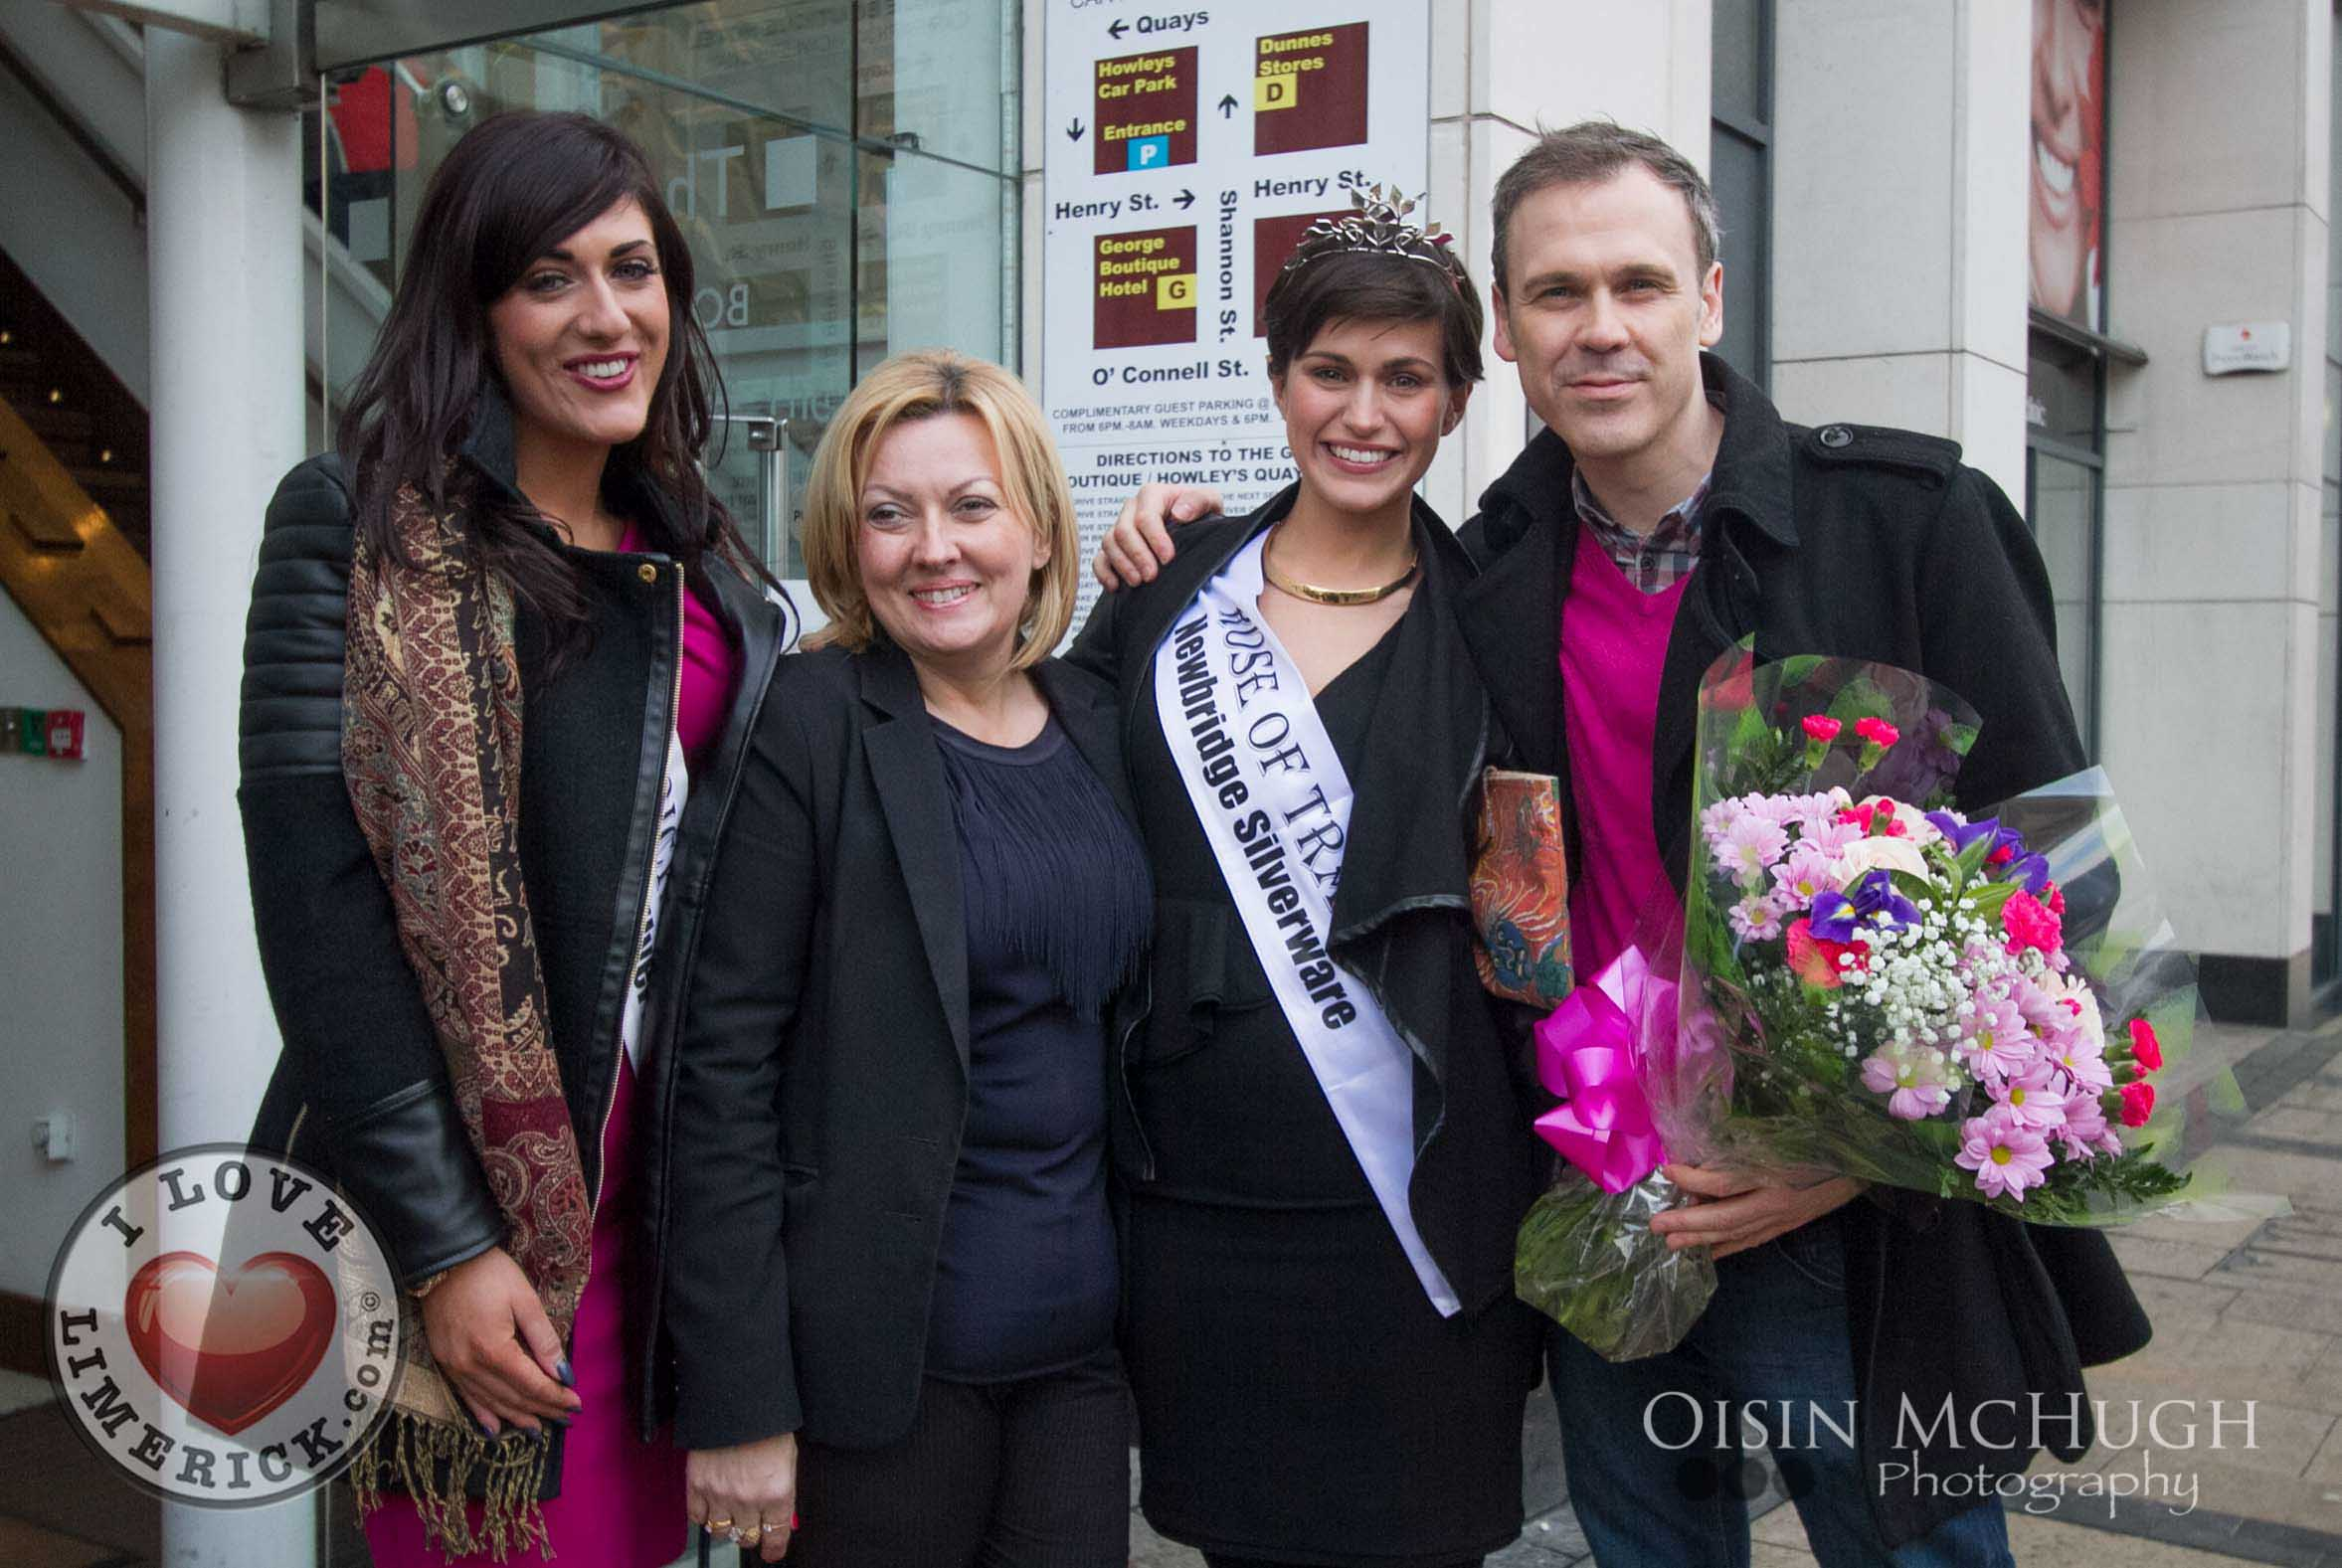 Rose of Tralee visits Limerick